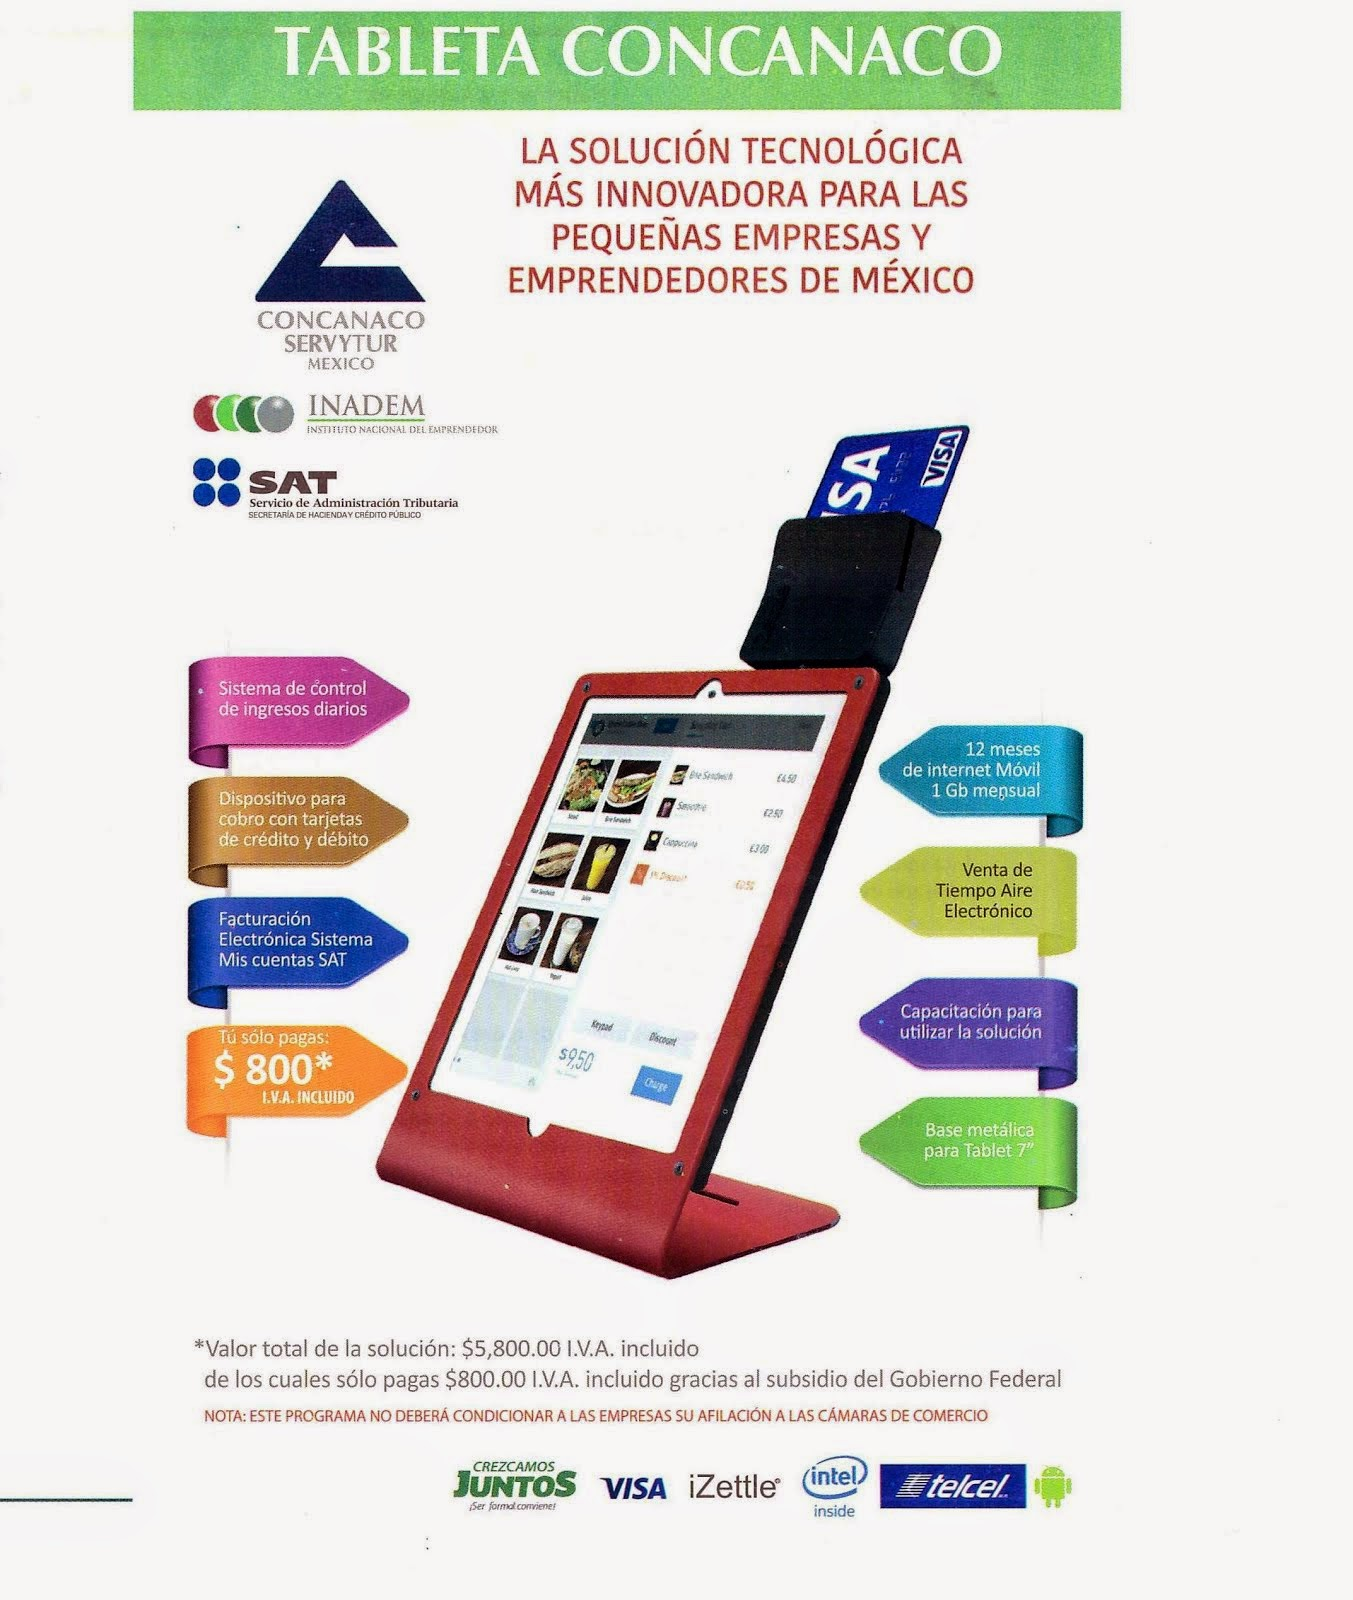 TABLET Y DISPOSITIVO PARA TU NEGOCIO